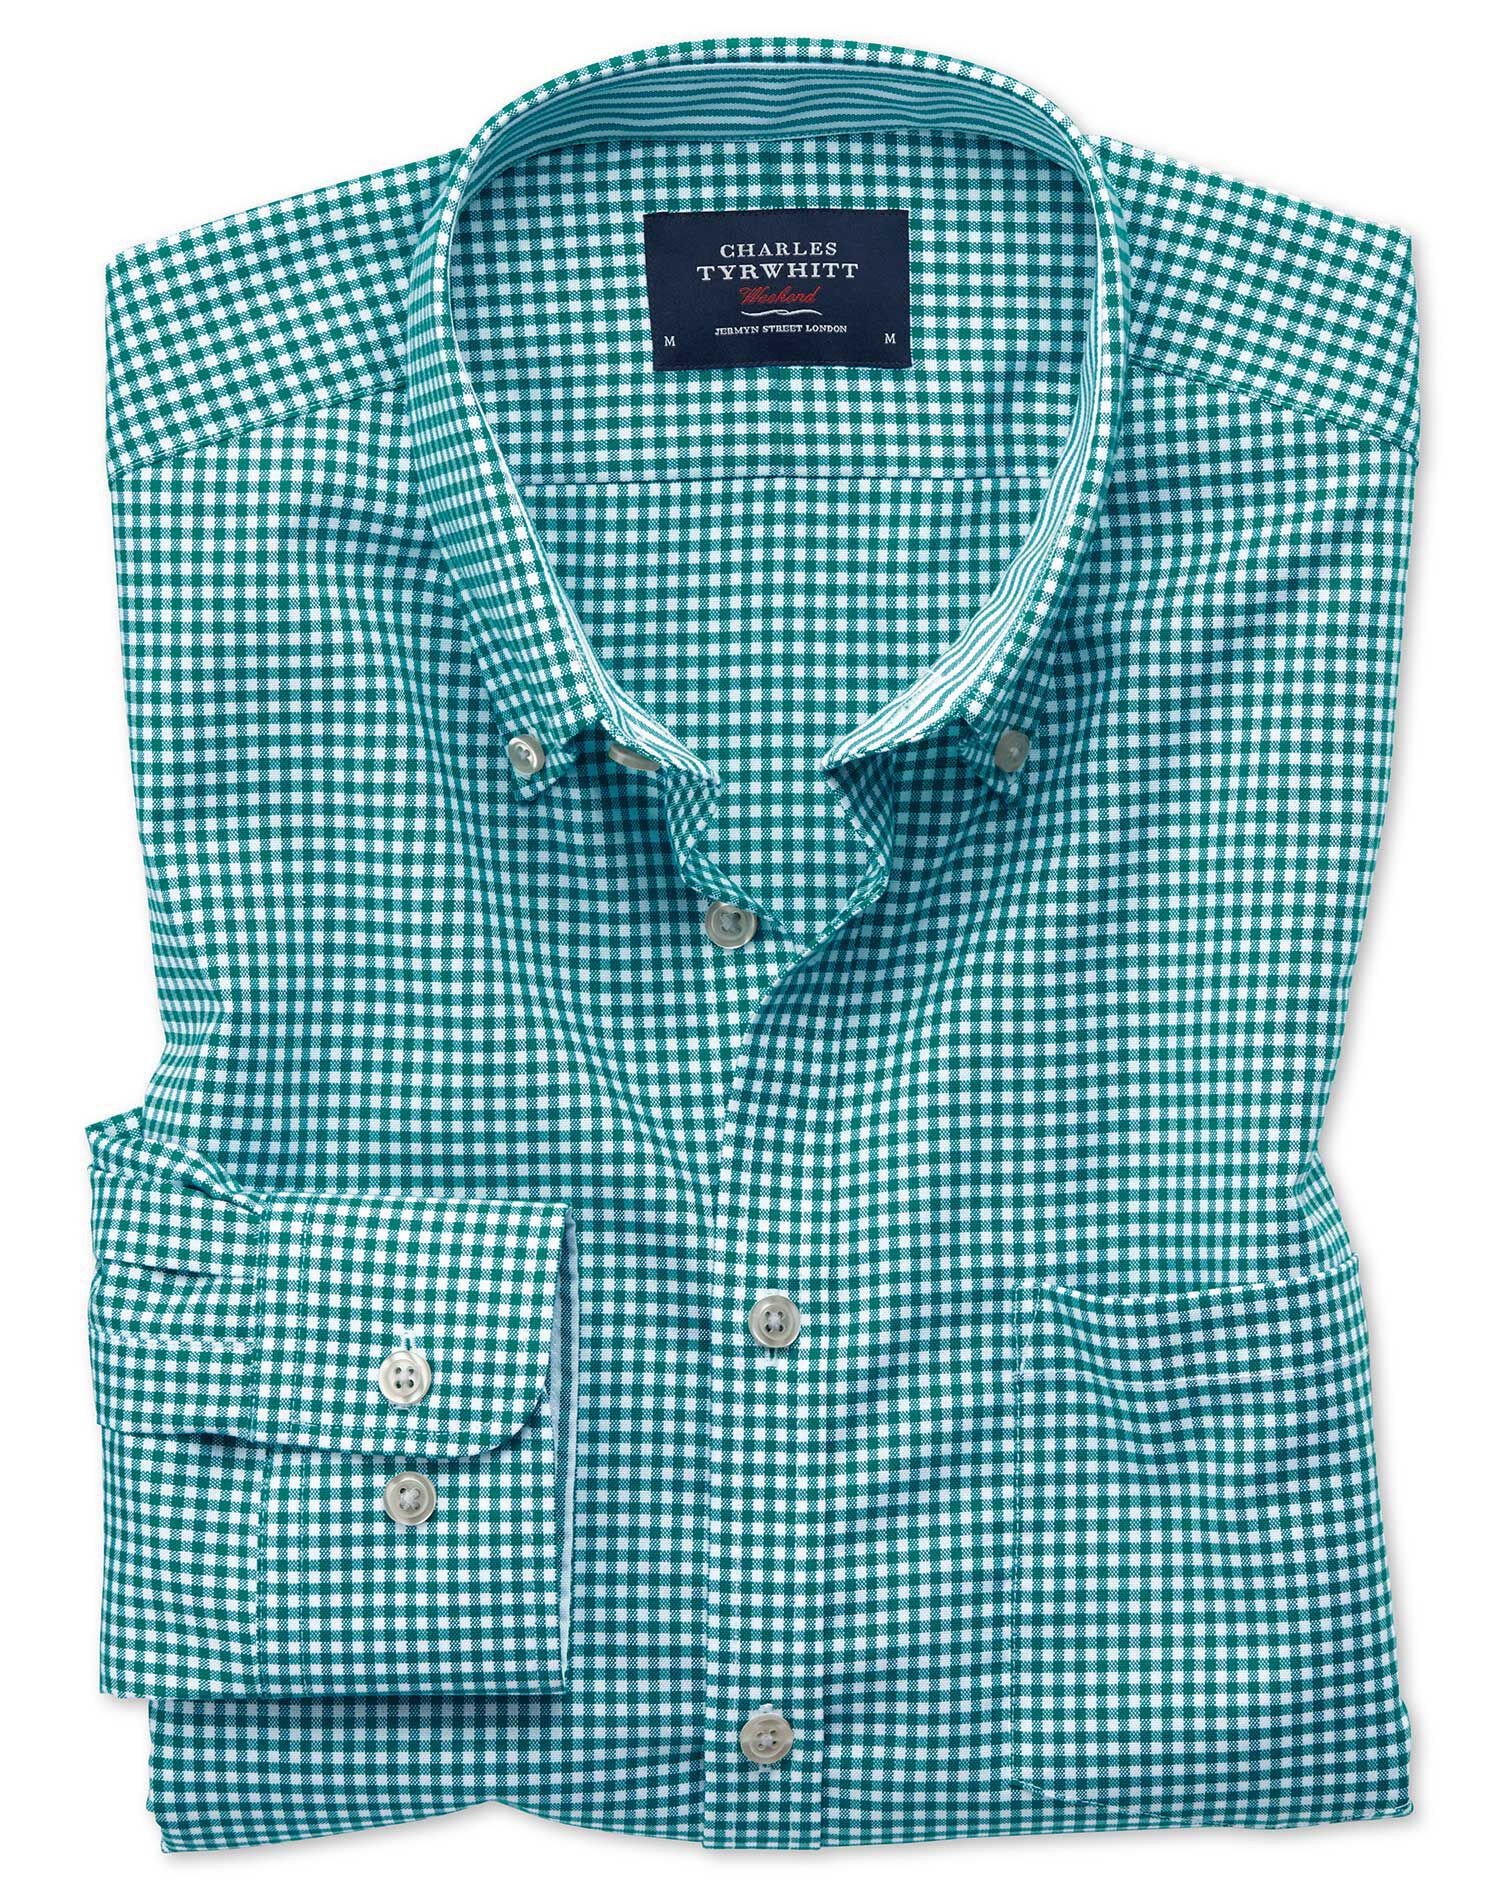 Slim Fit Button-Down Non-Iron Oxford Gingham Green Cotton Shirt Single Cuff Size Large by Charles Ty